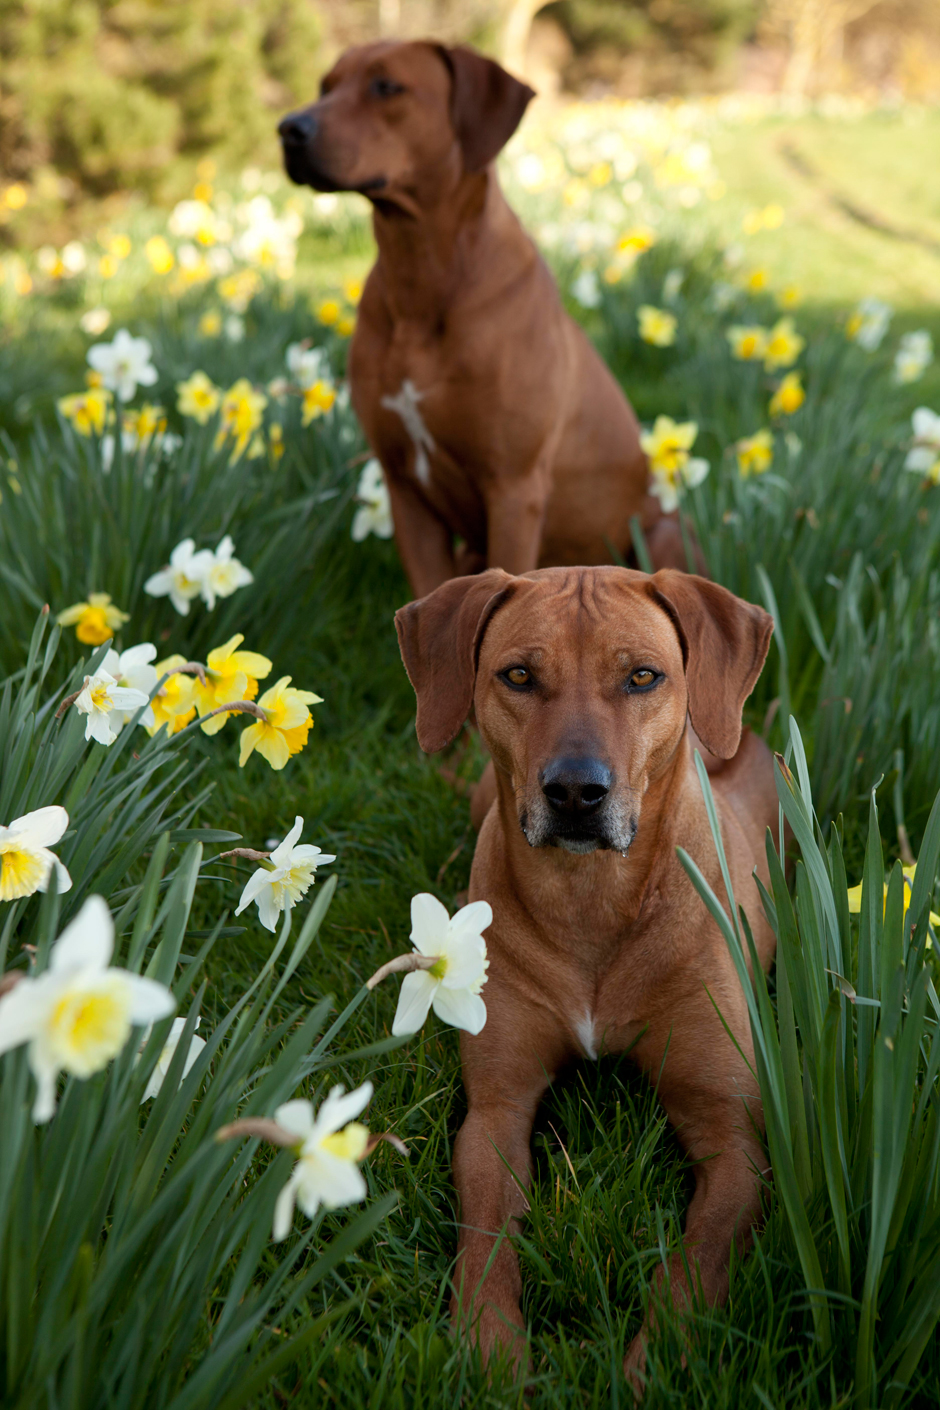 MG 9649 Spring has Sprung as they say...so heres some Rhodesian Ridgebacks & Daffodils